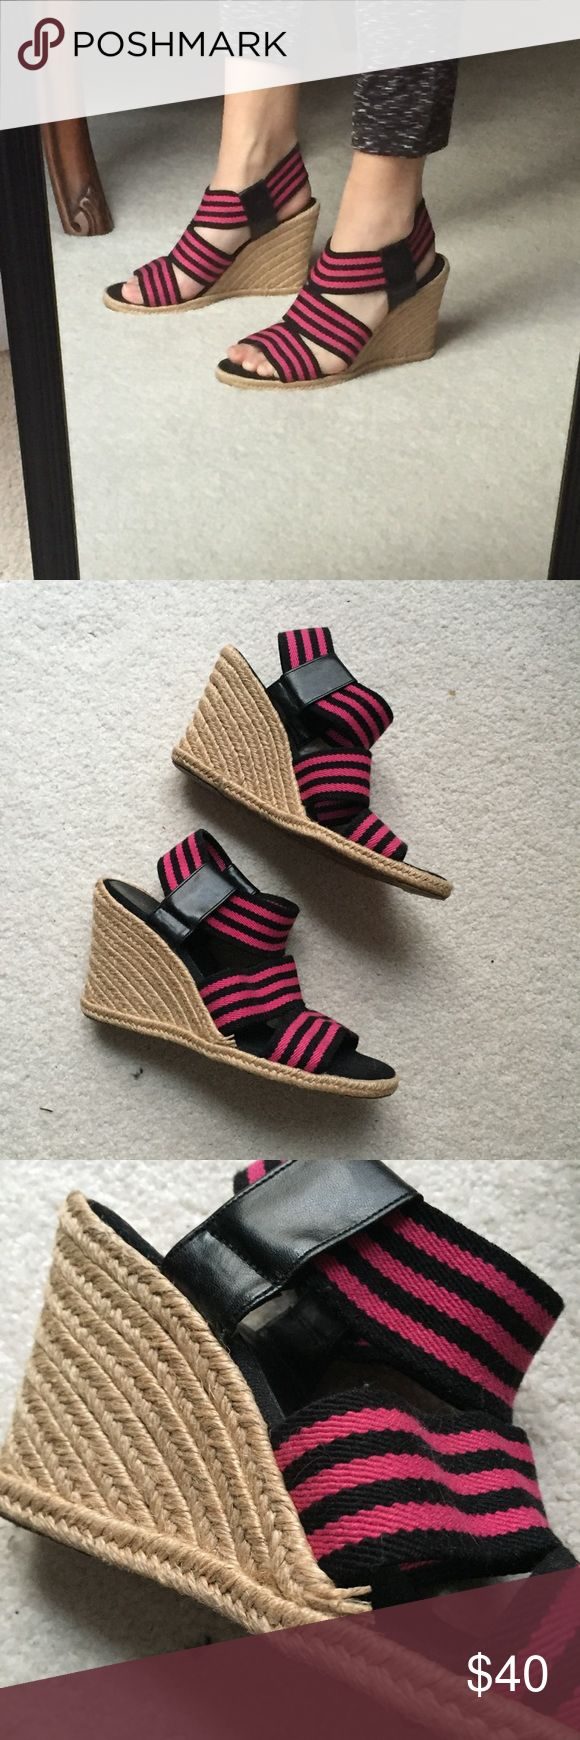 Tahari Striped Wedges Bubblegum pink and black stripes. These are well-loved, but still have life in them! The straw is coming up on the side of one of the wedges, pictured above. Otherwise in great condition. The height is about 2.5 inches. The straps are stretchy material. Tahari Shoes Wedges